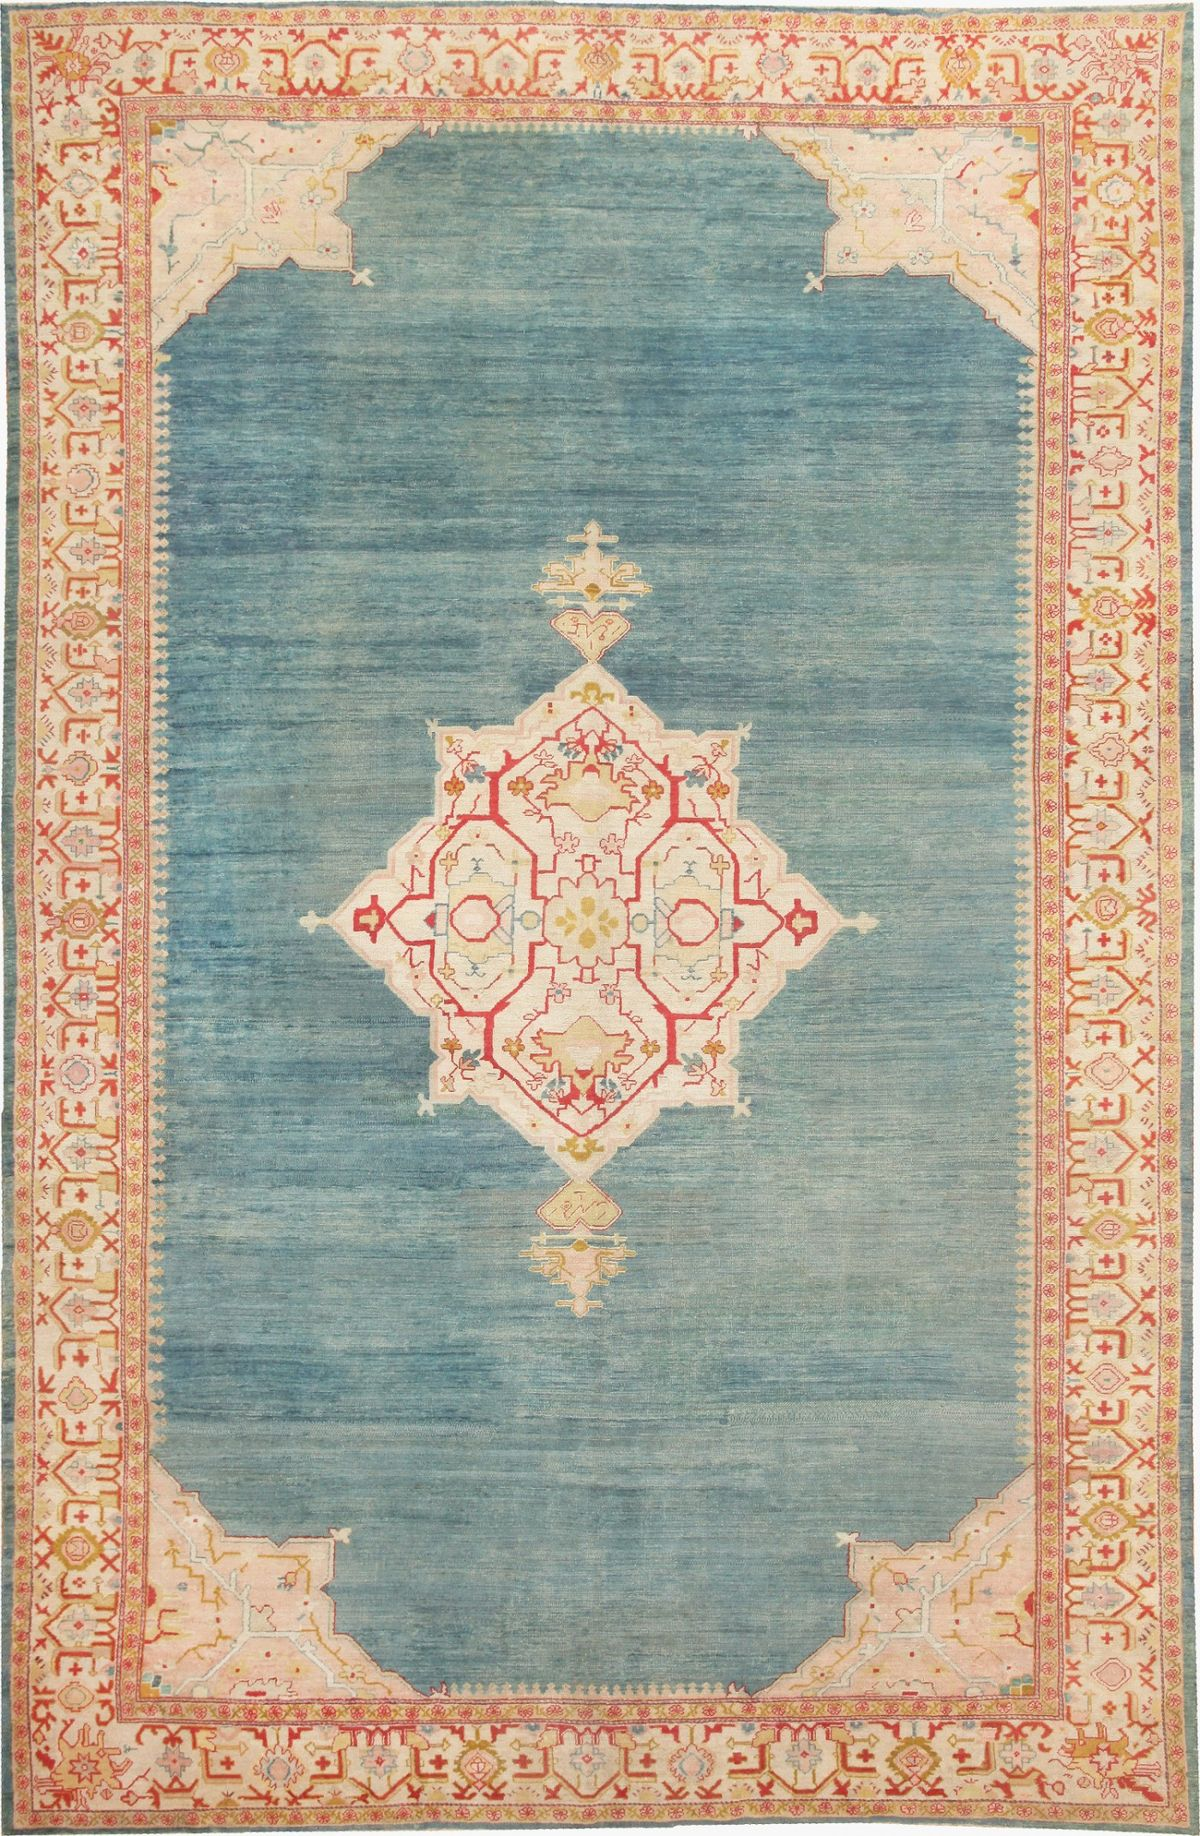 moroccan awesome rug turkish online img find for home shops best places to rugs